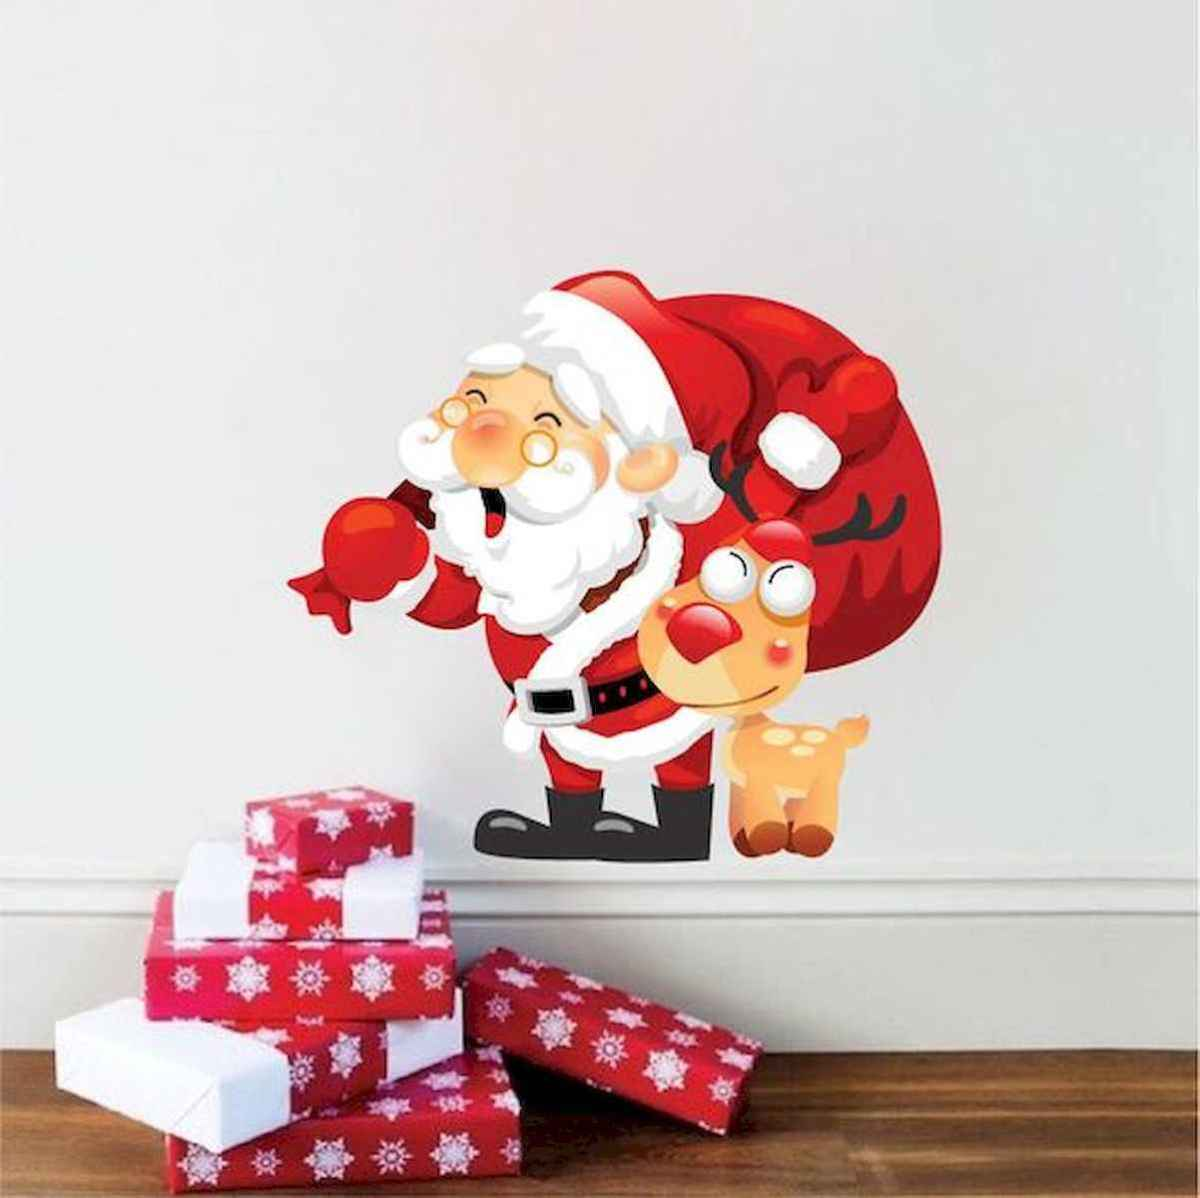 35 awesome apartment christmas decorations ideas (30)